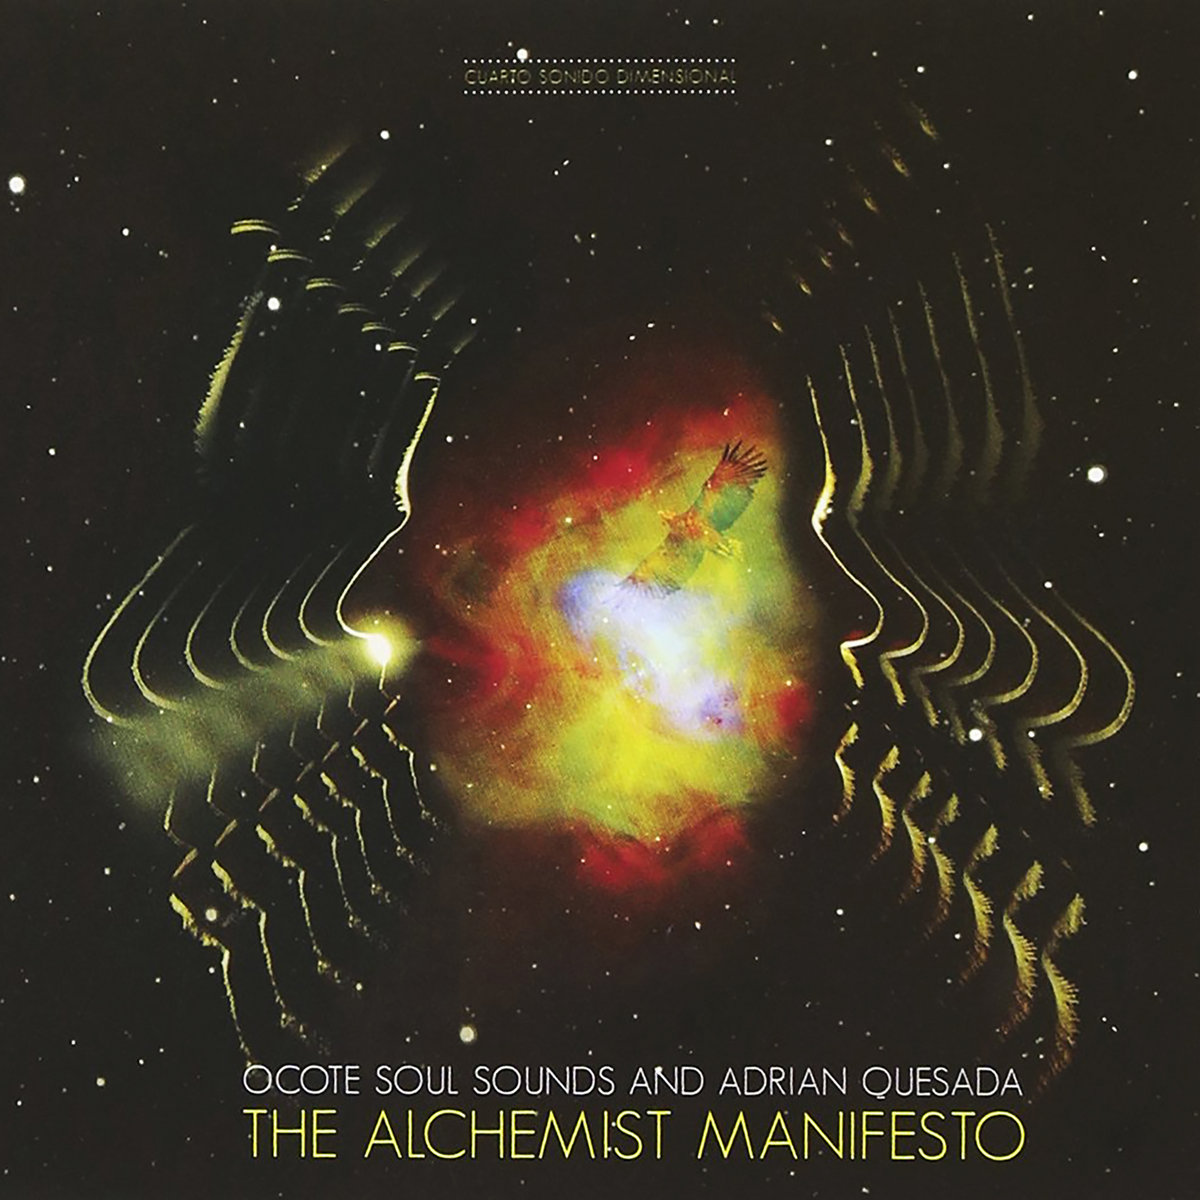 the alchemist manifesto ocote soul sounds the alchemist manifesto by ocote soul sounds